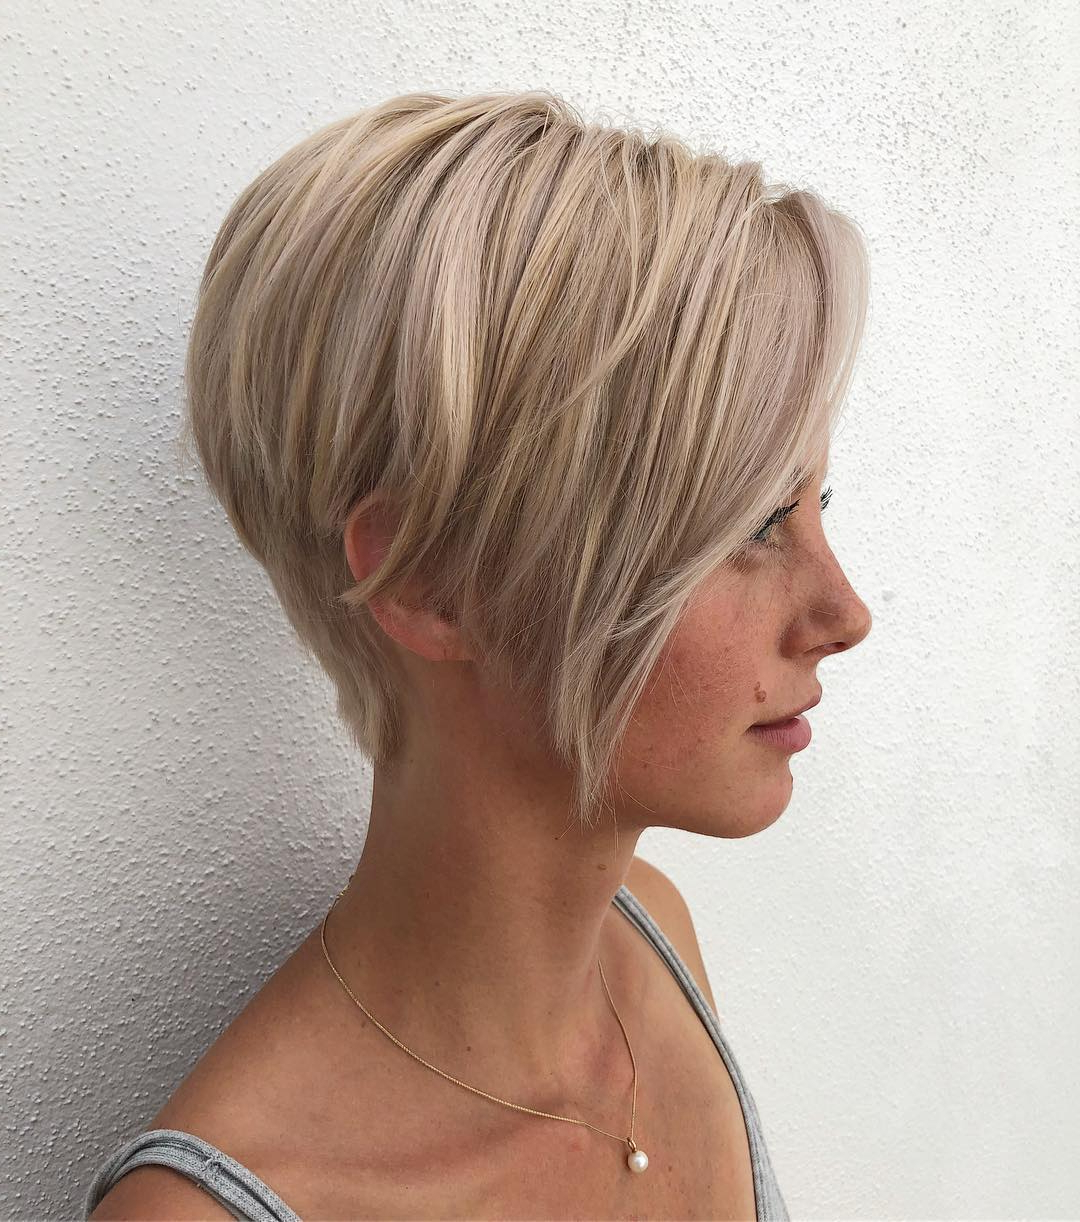 50 Head Turning Hairstyles For Thin Hair To Flaunt In 2019 Throughout Choppy Pixie Bob Hairstyles For Fine Hair (View 8 of 20)